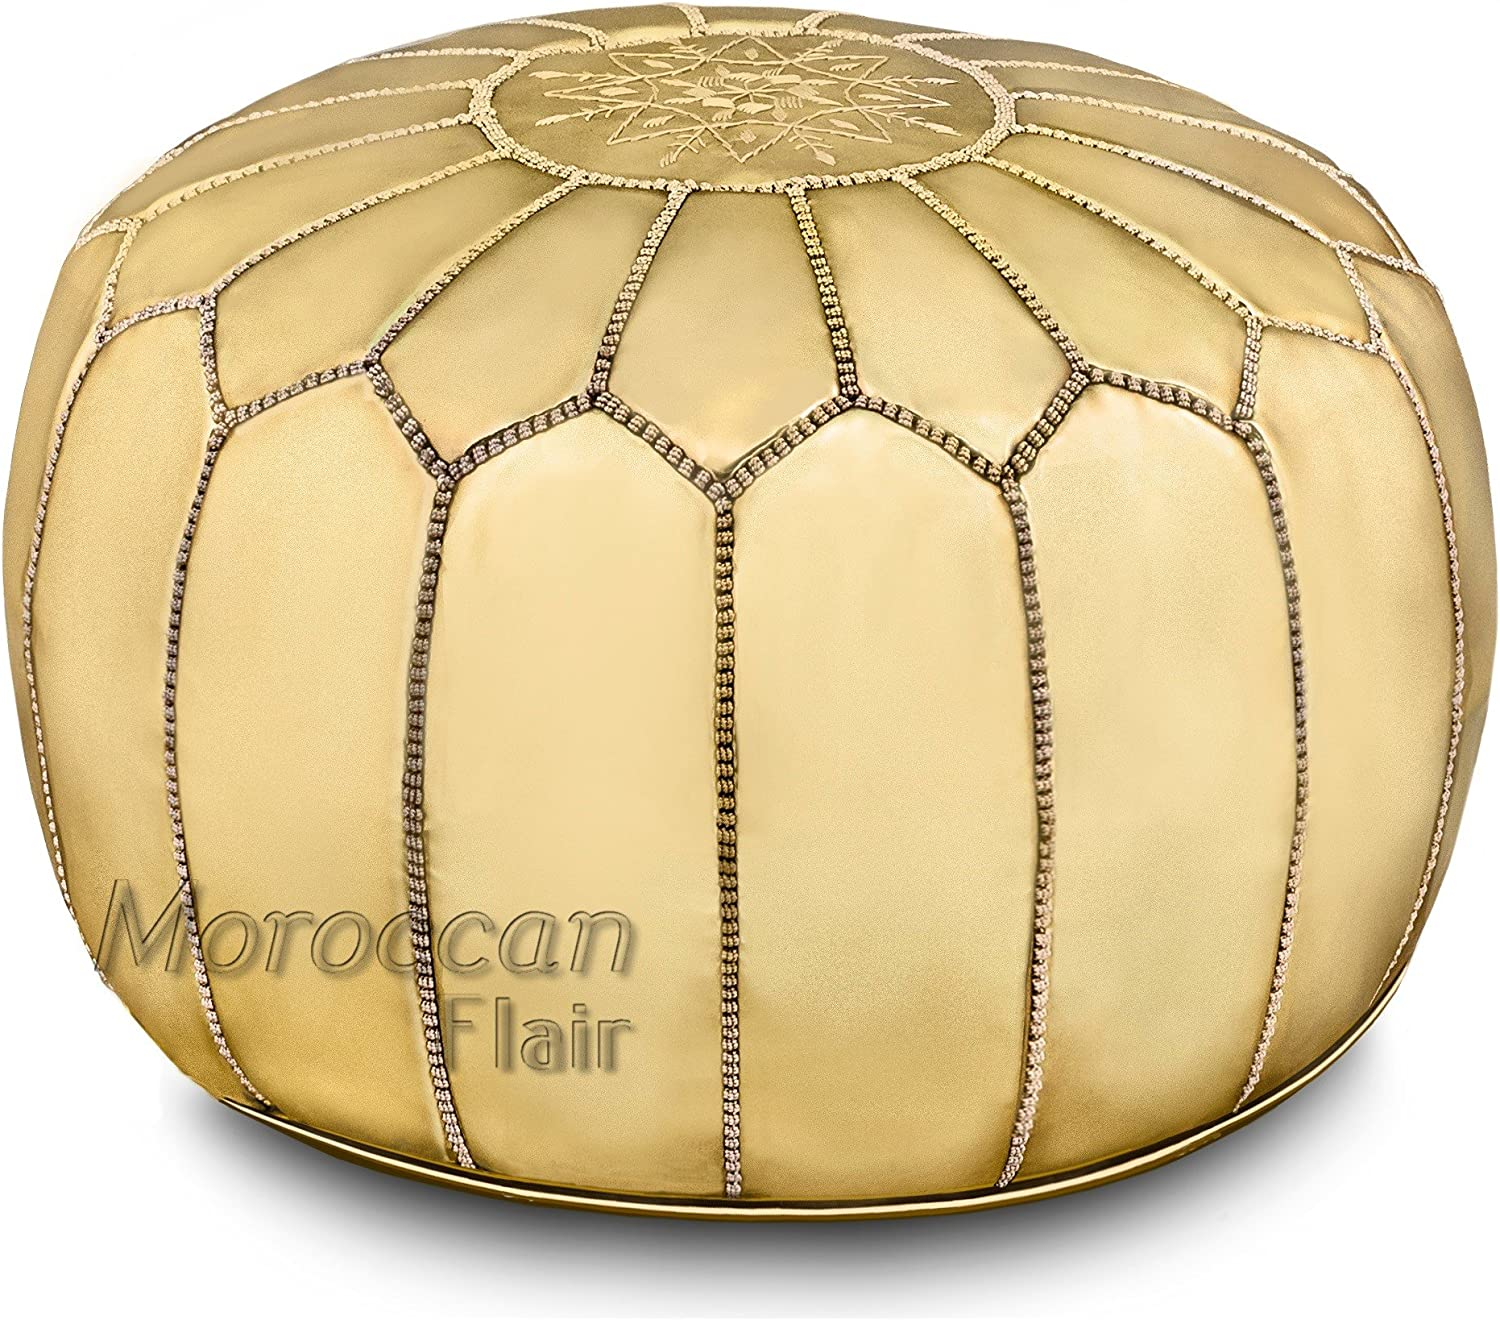 "Moroccan Flair | Genuine Handmade Moroccan Metallic Pouf | Bedroom & Living Room Round Ottoman | Premium Italian Ski Leather | Eco-Friendly Materials | 20"" x 20"" x 14"" 